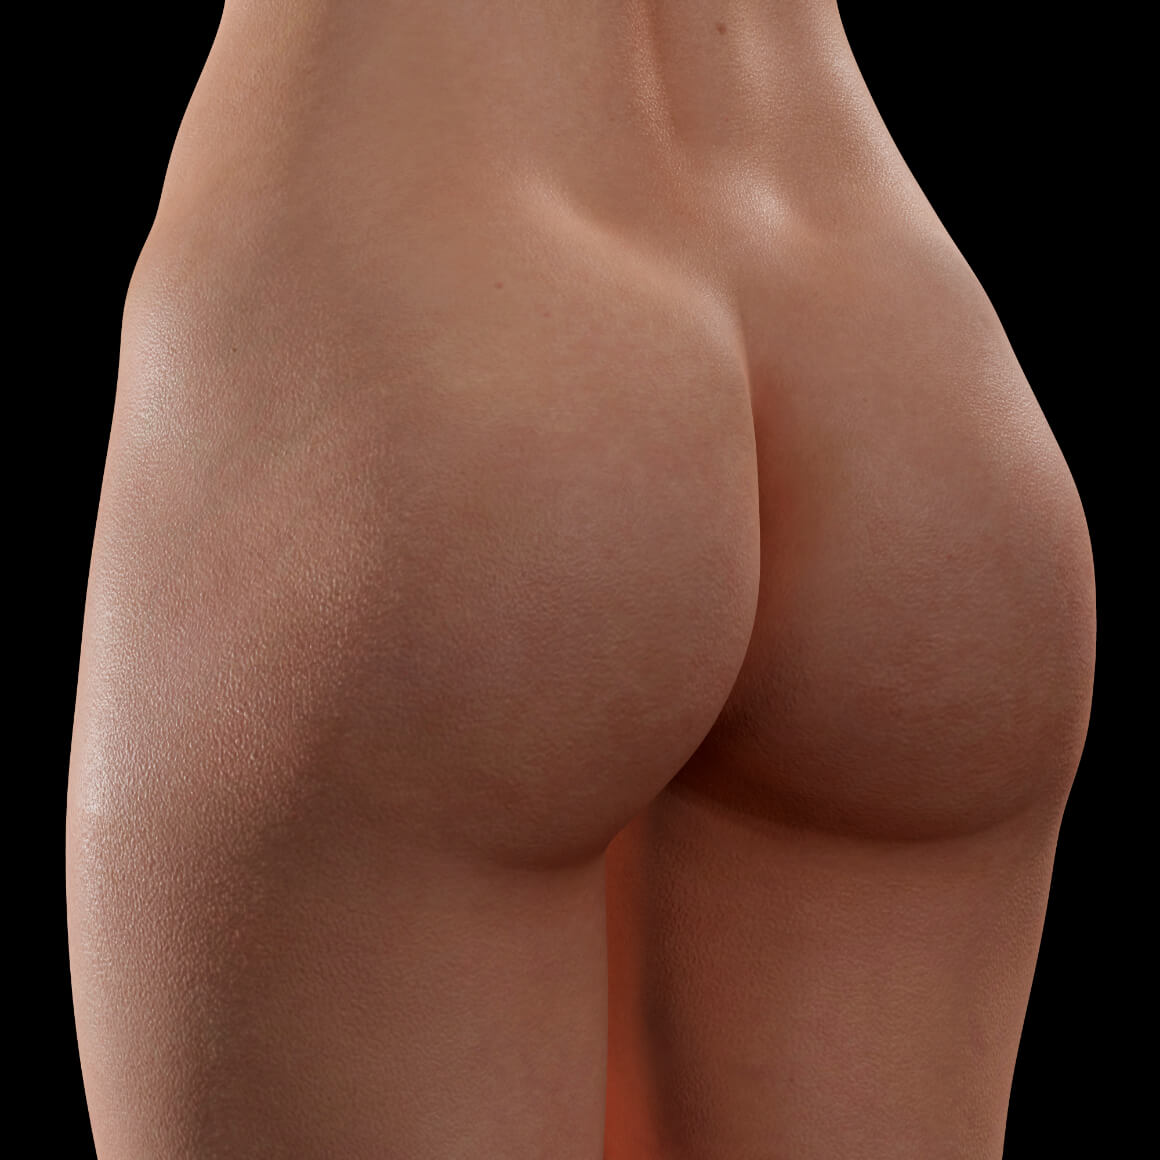 Female patient from Clinique Chloé positioned at an angle after a non-surgical butt lift treatment with Sculptra injections